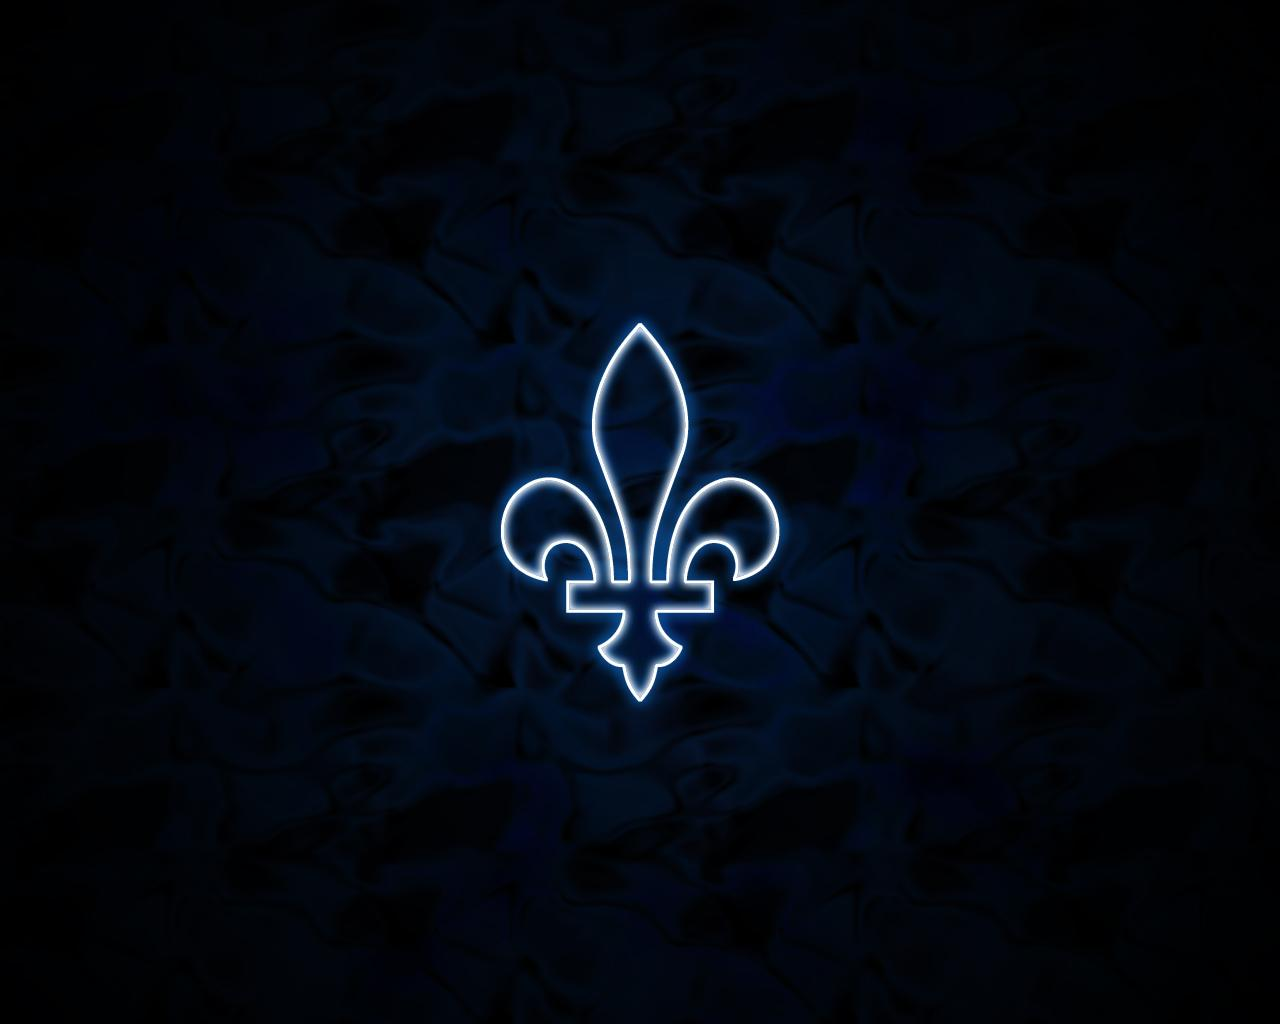 La fleur-de-lis by Fireproof83 on DeviantArt